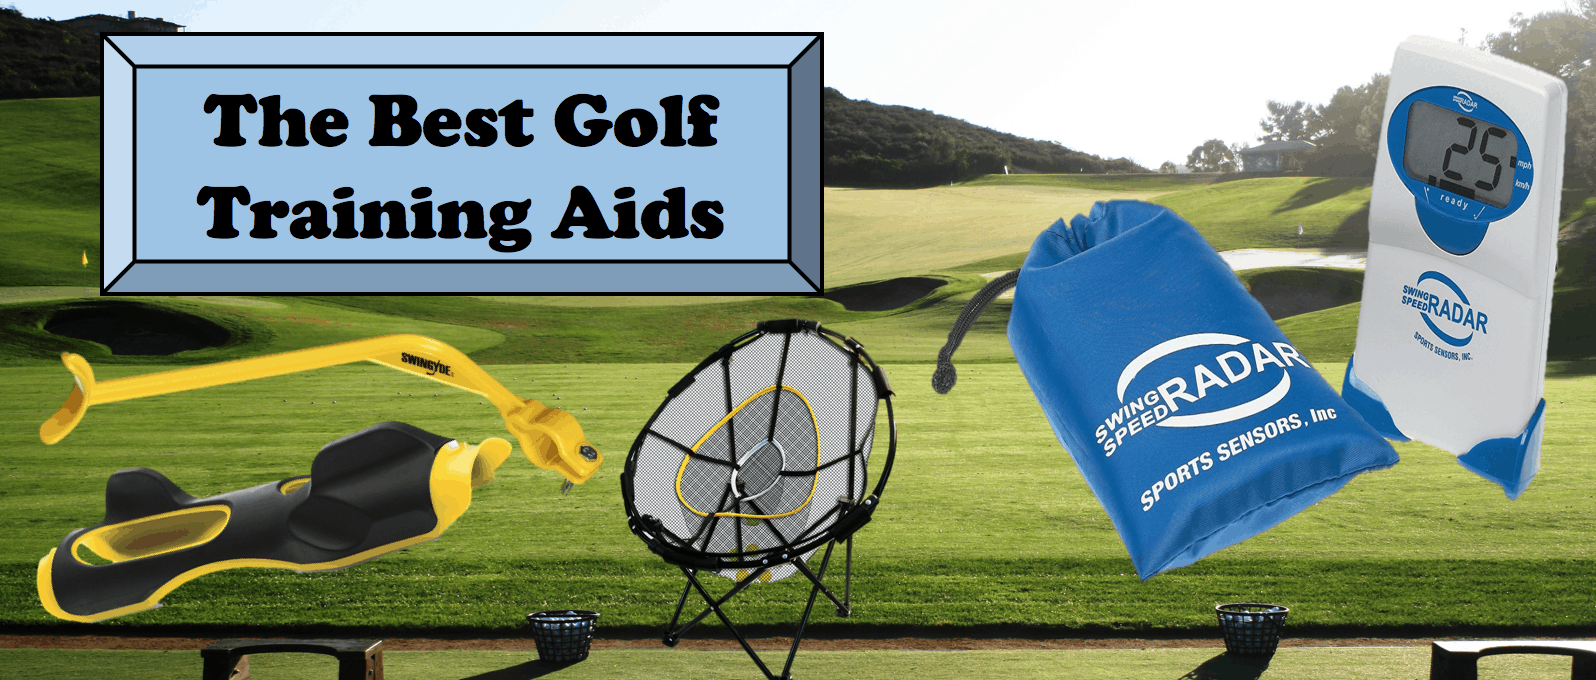 The Best Golf Training Aids